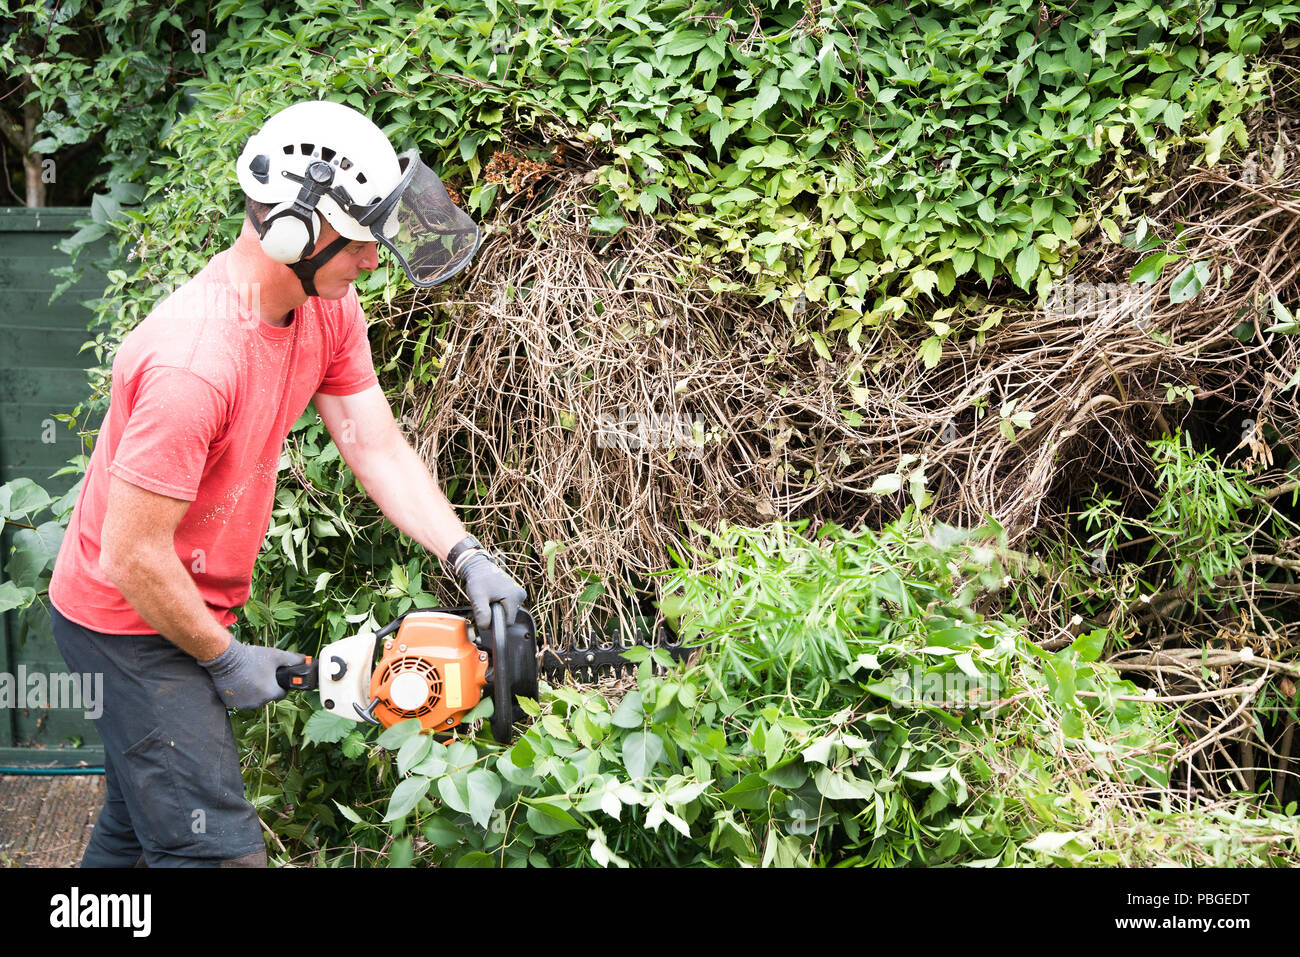 An garden worker using a power hedge trimmer to cut back a large overgrown bush. - Stock Image